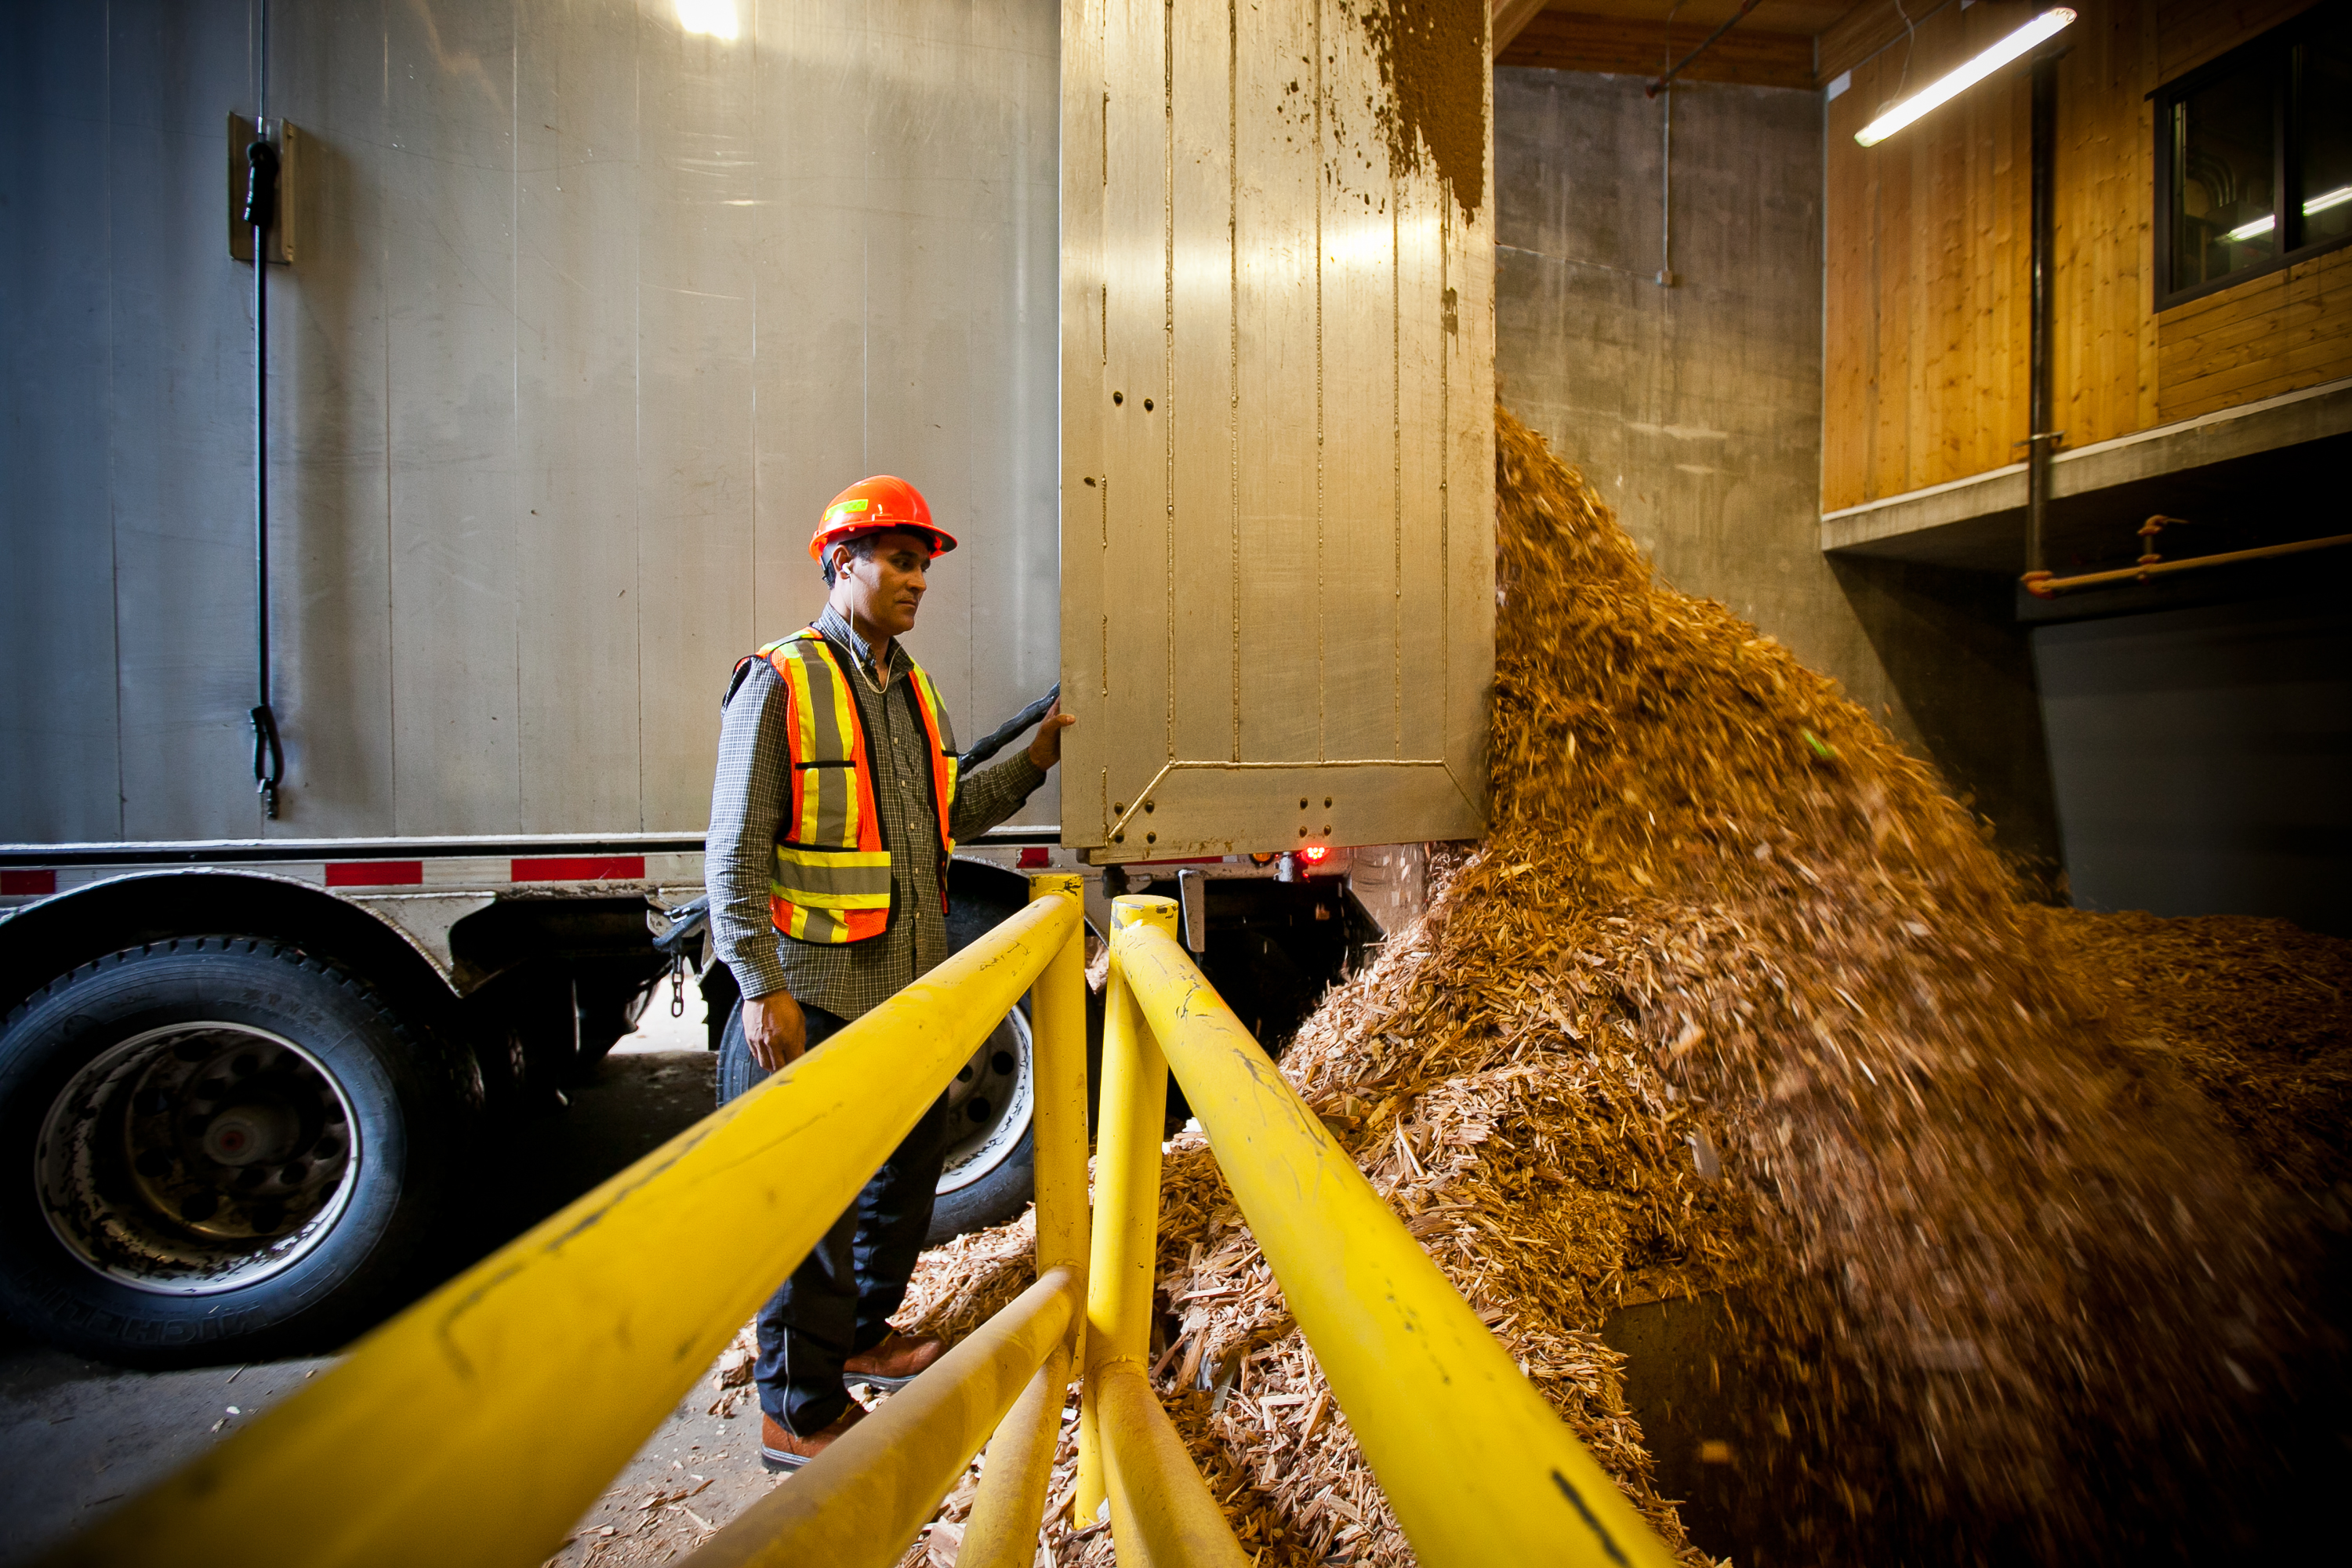 Biomass Fuel: Worse for Climate than Coal?